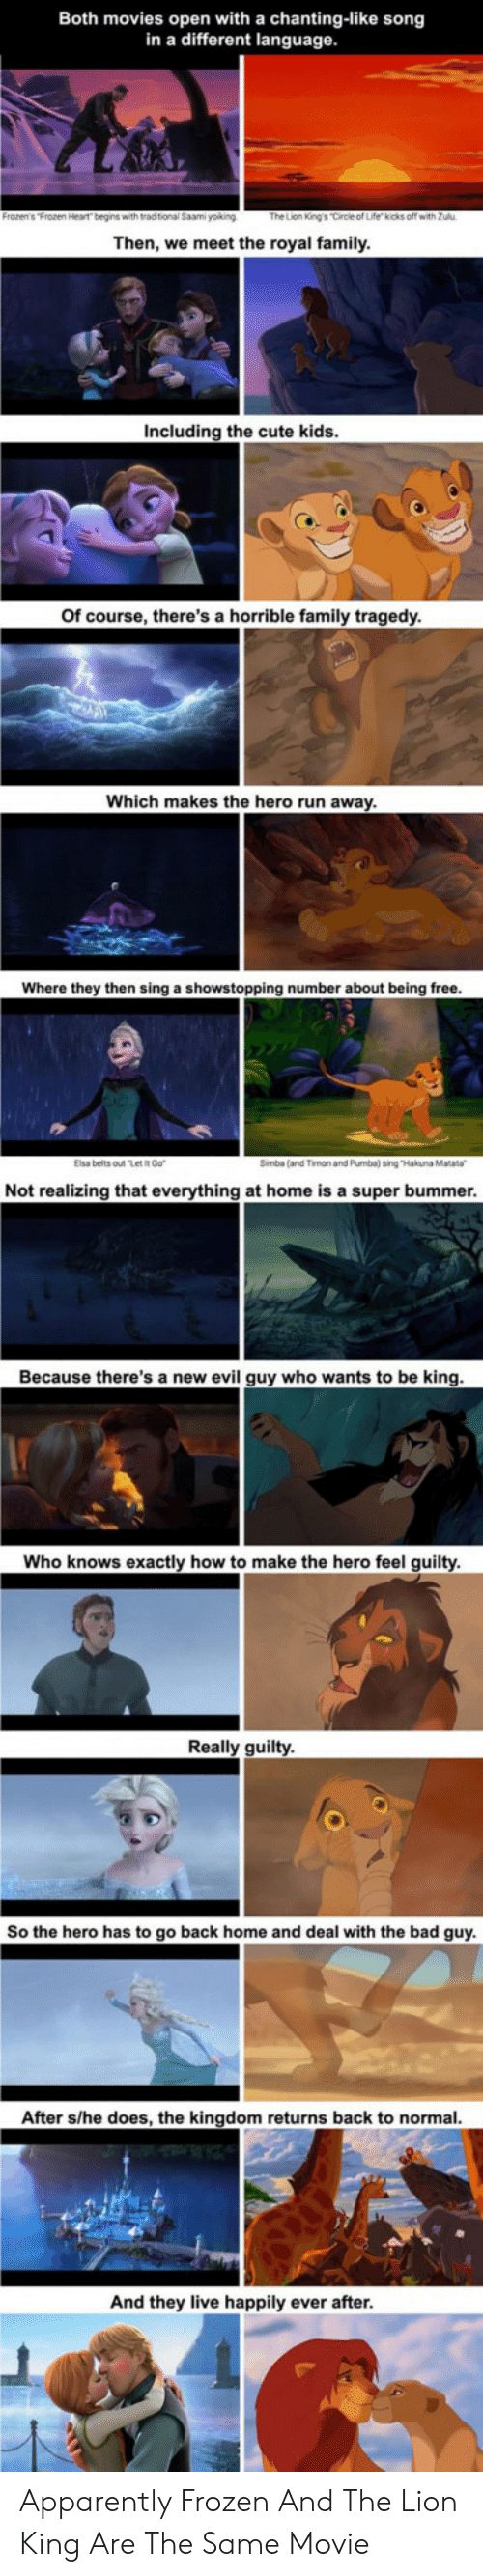 "Apparently, Bad, and Cute: Both movies open with a chanting-like song  in a different language.  The Lion King's Circle of Life kicks off with Zulu  Then, we meet the royal family.  Including the cute kids.  Of course, there's a horrible family tragedy.  Which makes the hero run away.  Where they then sing a showstopping number about being free.  Elsa belts out ""Let IR Go  Simba (and Timon and Pumba) sing ""Hakuna Matata  Not realizing that everything at home is a super bummer.  Because there's a new evil guy who wants to be king.  Who knows exactly how to make the hero feel guilty.  Really guilty  So the hero has to go back home and deal with the bad guy.  After s/he does, the kingdom returns back to normal.  And they live happily ever after. Apparently Frozen And The Lion King Are The Same Movie"